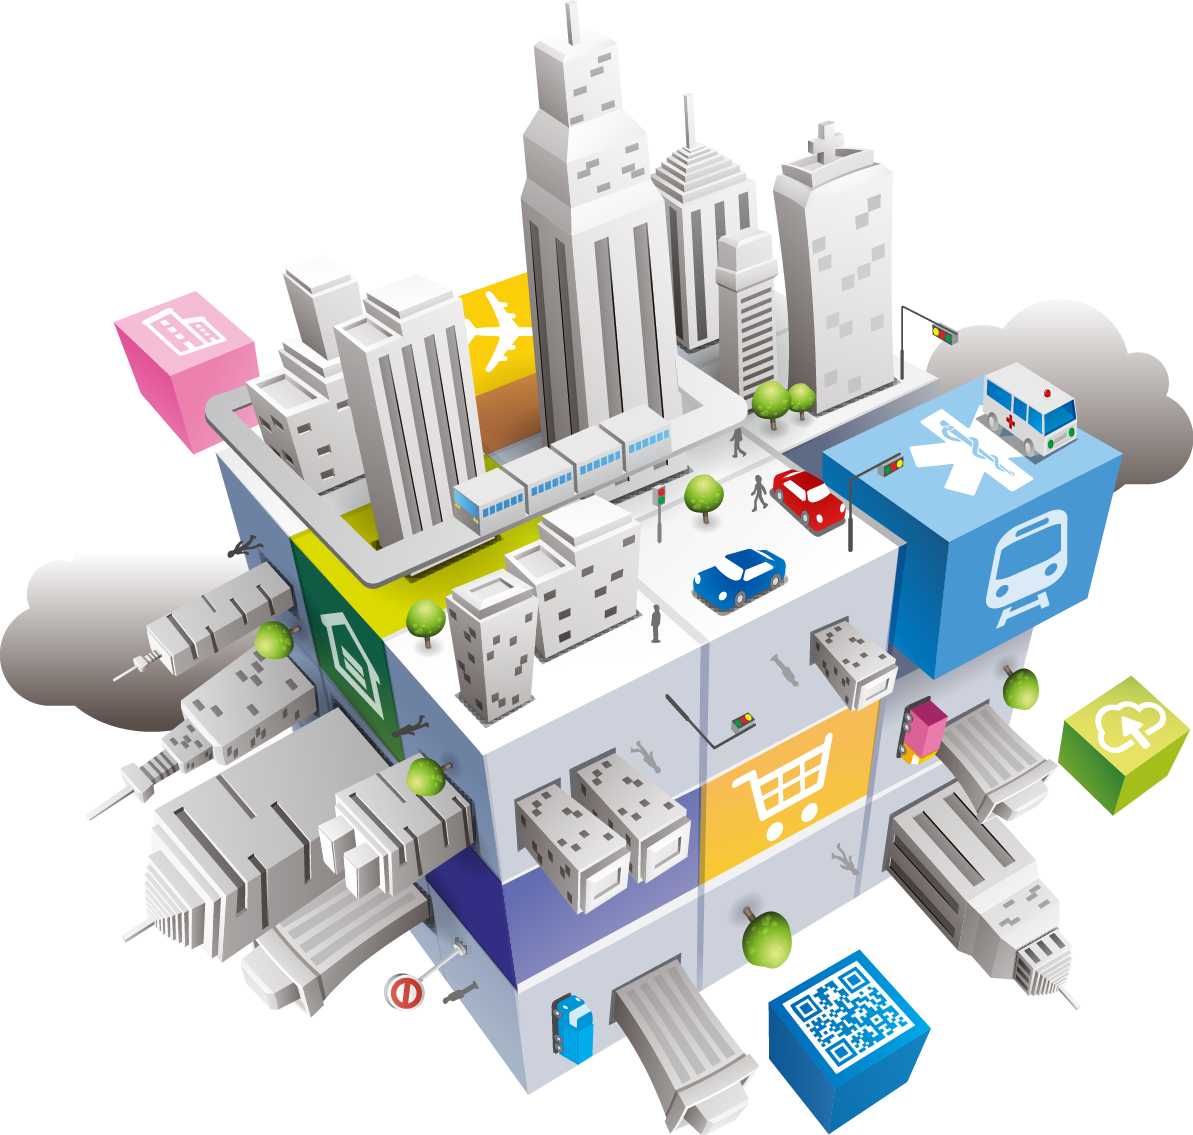 smart-city-images-5543